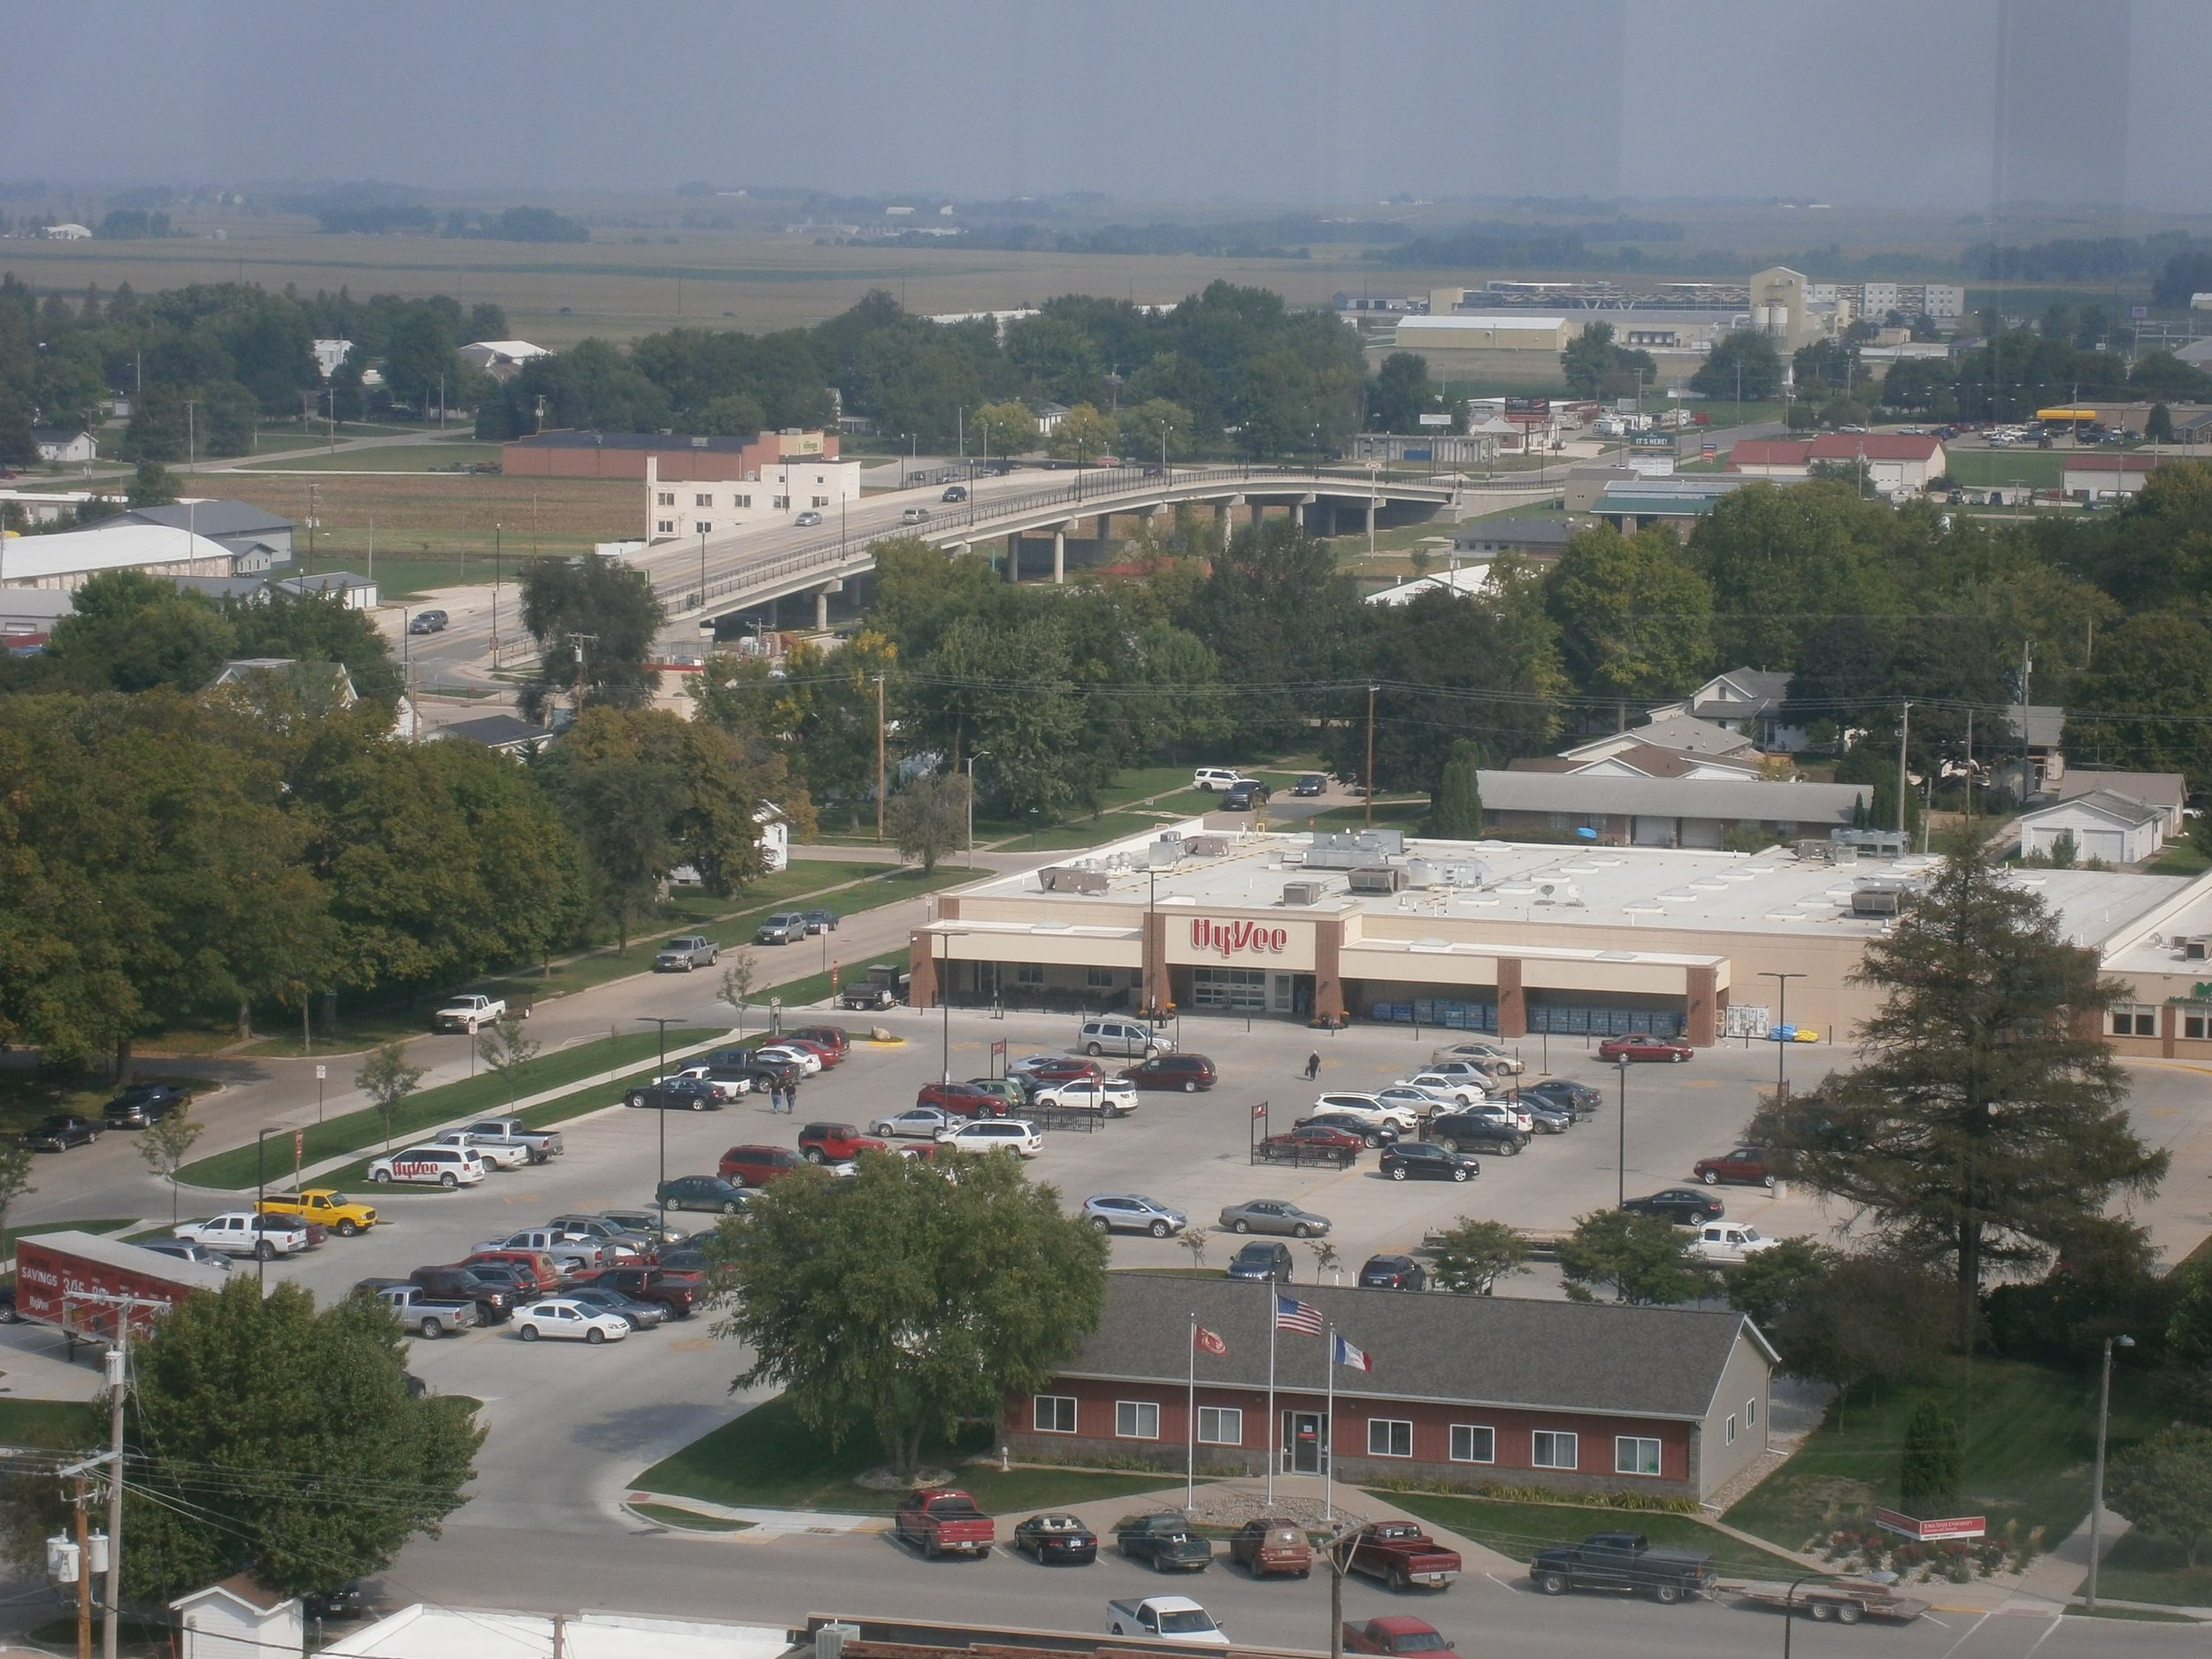 The local HyVee grocery store is located in town rather than out on the edge which makes it accessible by more modes of transportation than just cars.